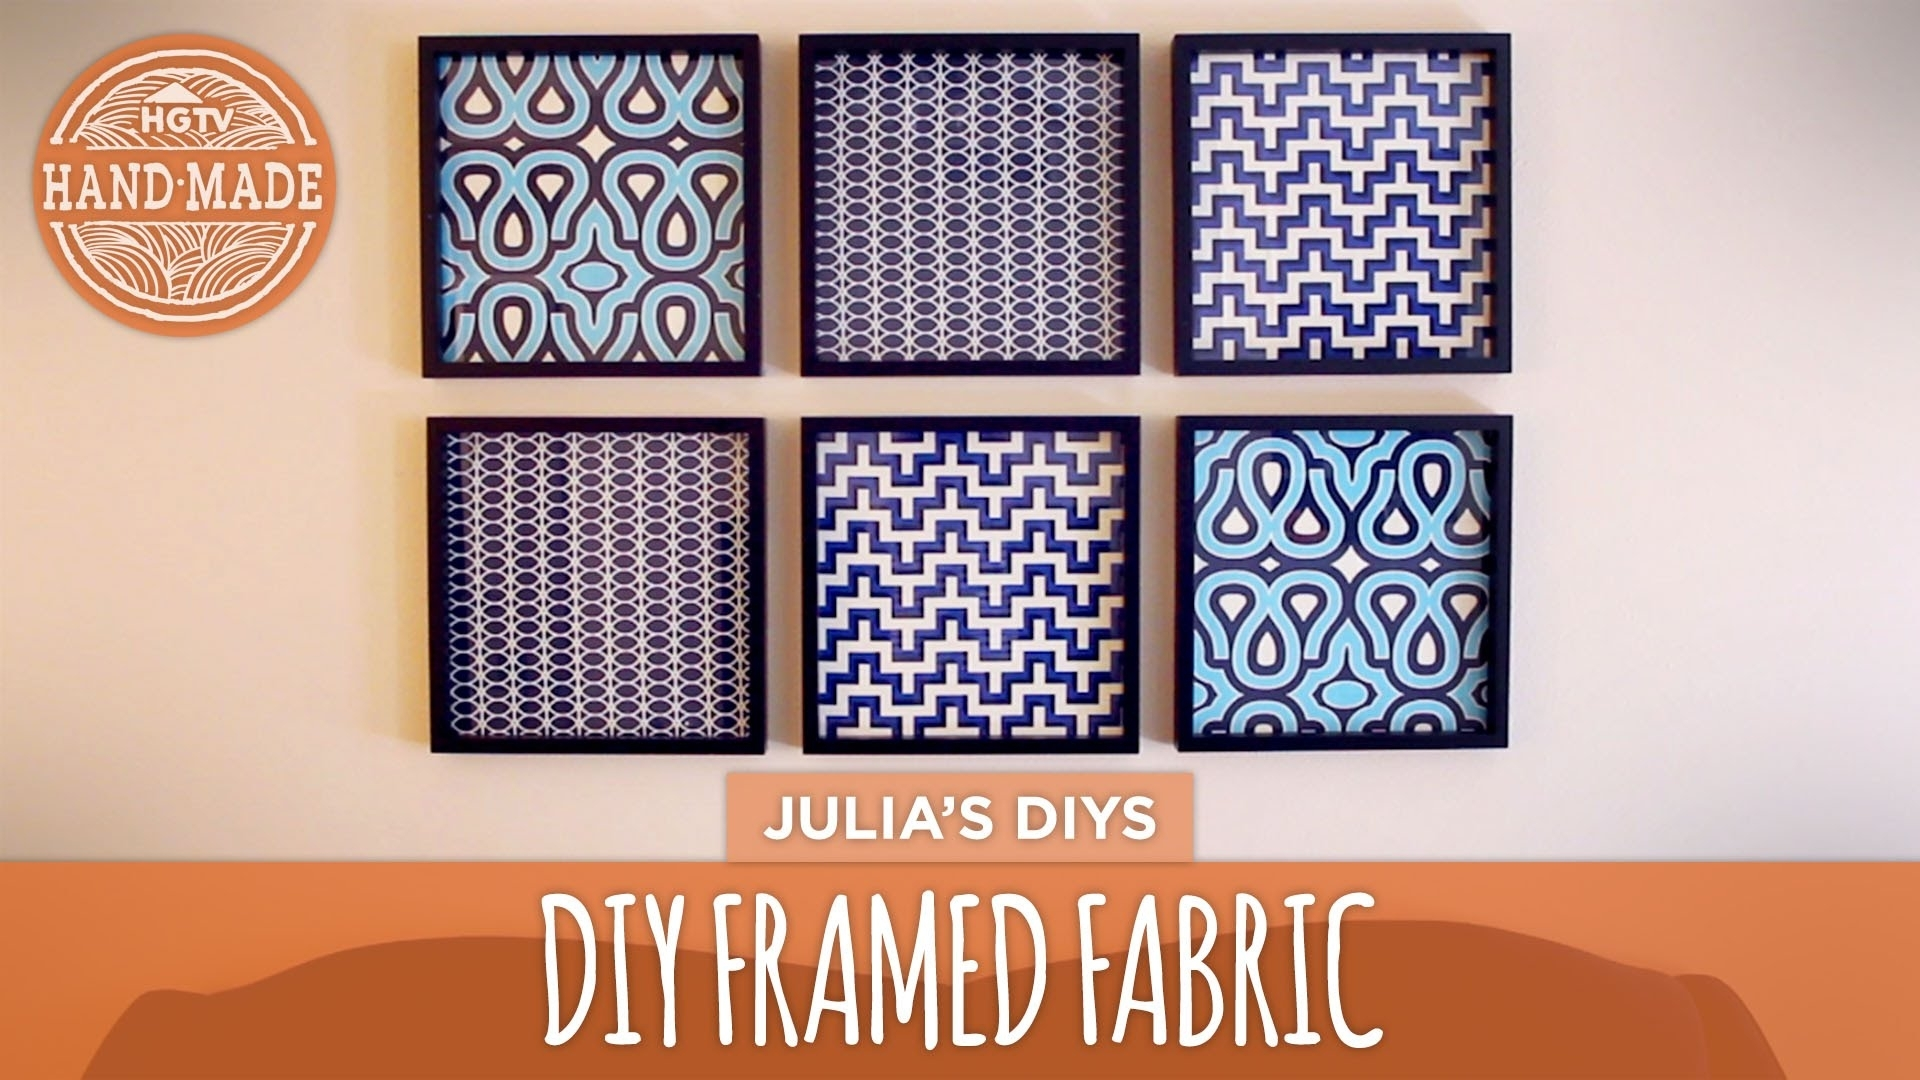 Diy Framed Fabric Gallery Wall - Hgtv Handmade - Youtube intended for Fabric Wall Art (Image 5 of 20)